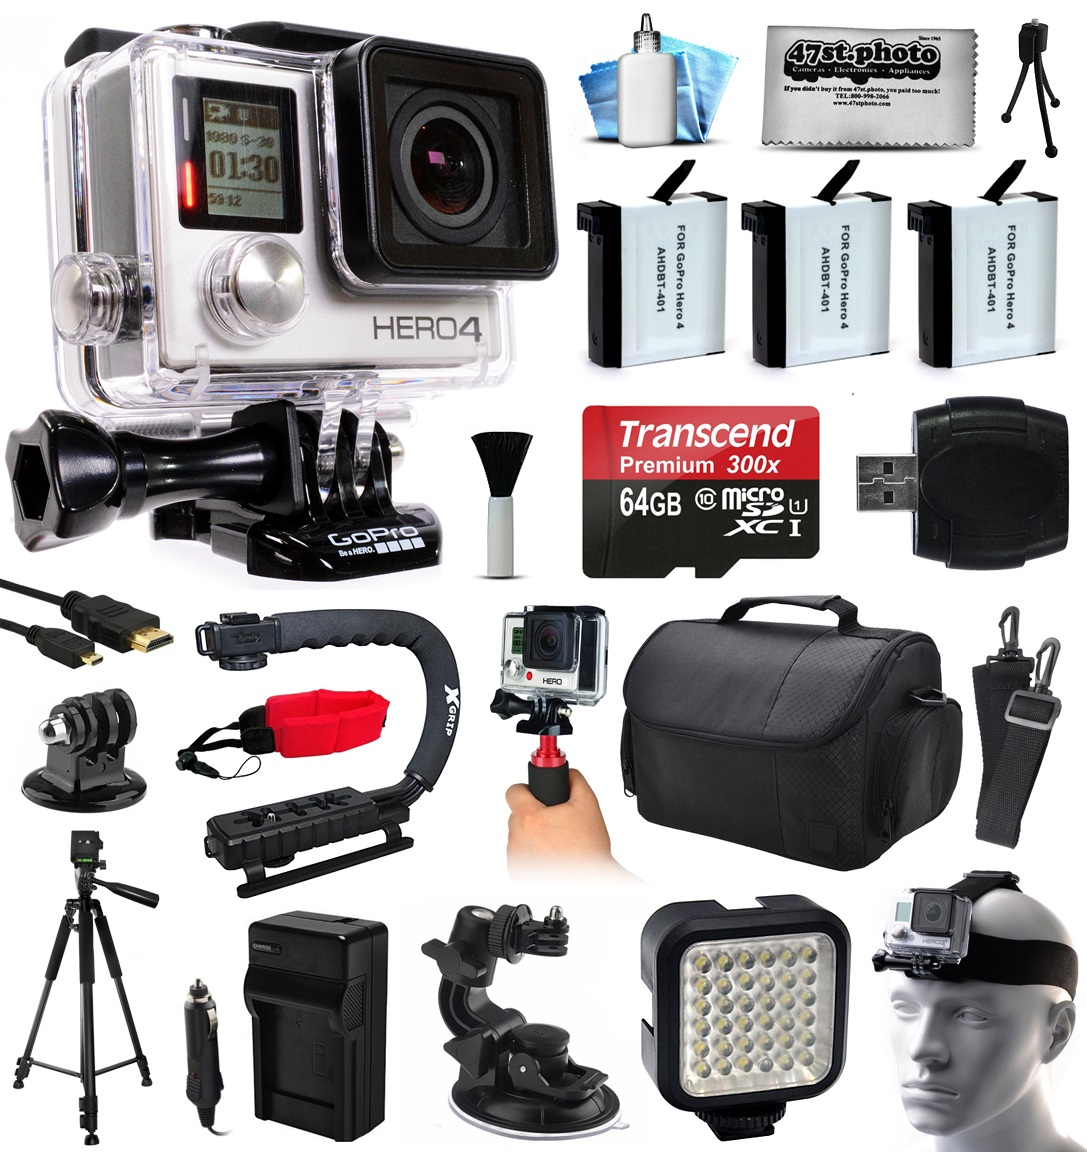 GoPro HERO4 Hero 4 Black Edition 4K Action Camera Camcorder with 64GB MicroSD, 3x Battery, Charger, Large Case, Handle, Tripod, Car Mount, LED Video Light, Head Helmet Strap, Cleaning Kit (CHDHX-401)